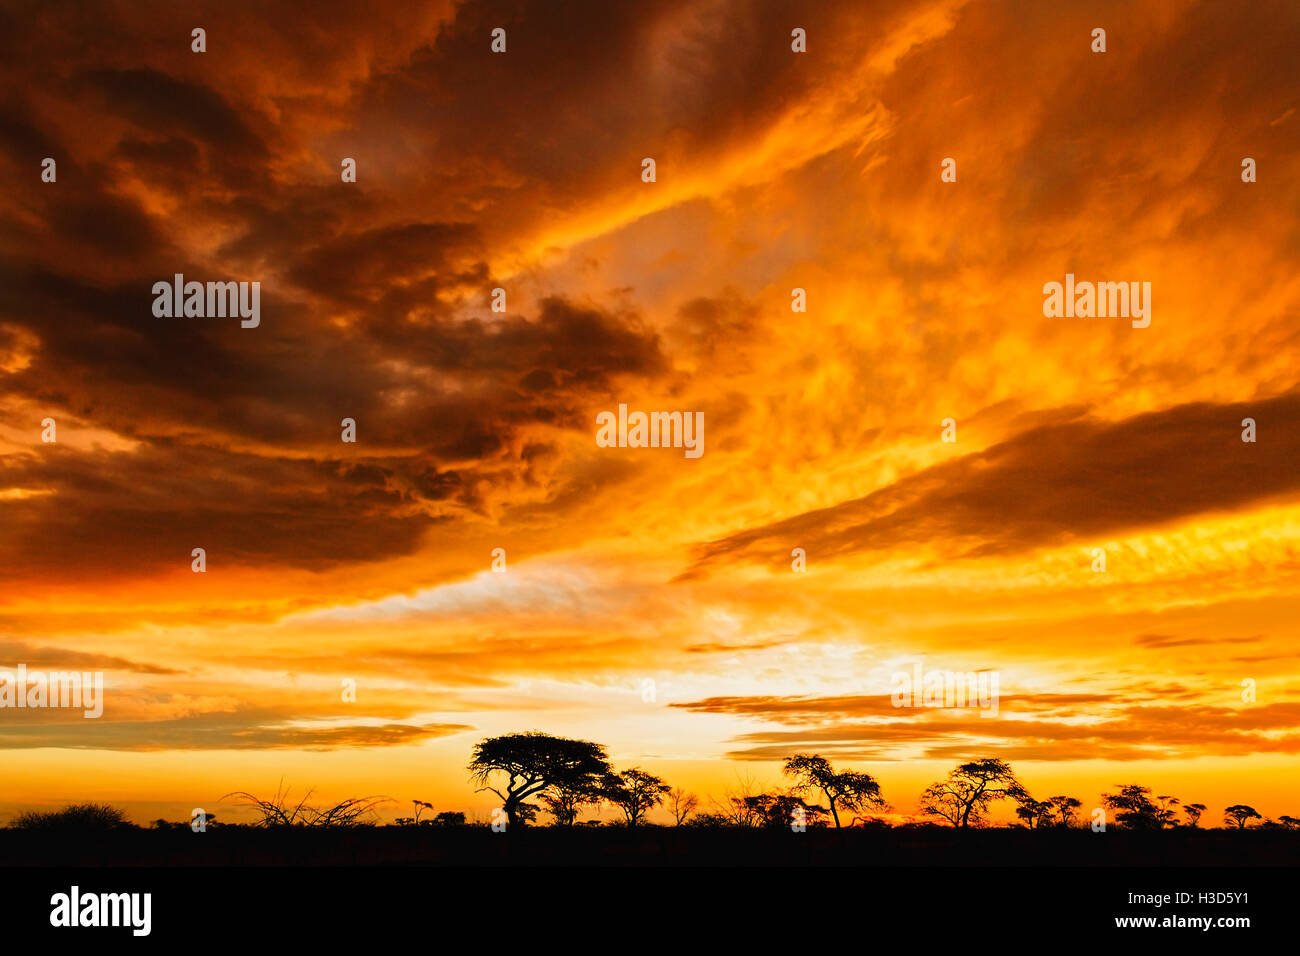 Dramatic sunset following a storm at Makgadikgadi Pans National Park, Botswana - Stock Image